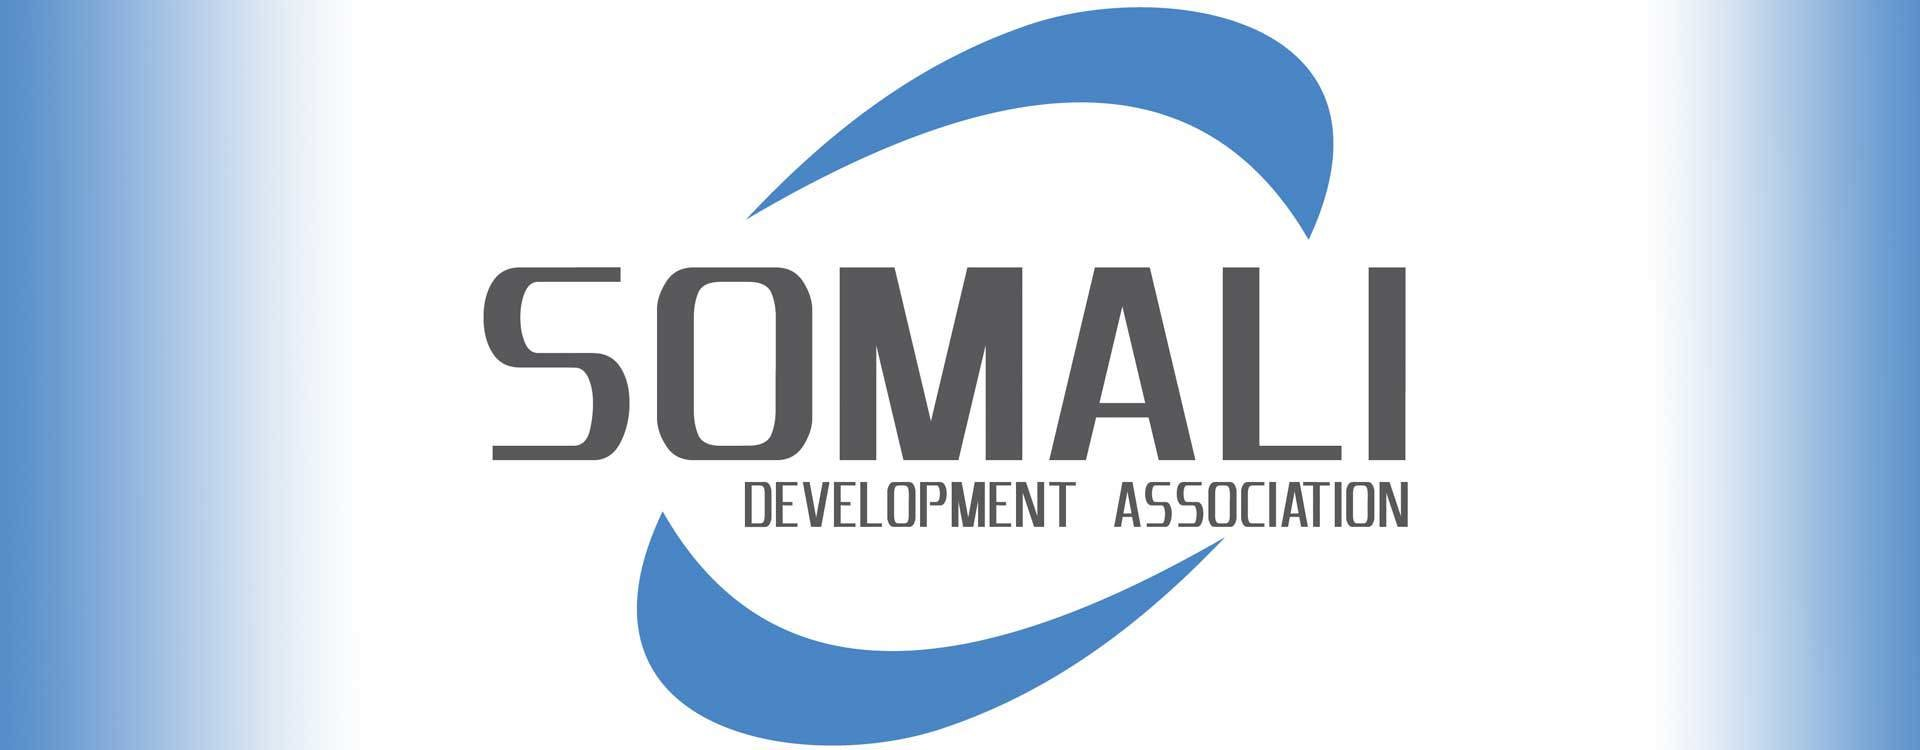 Somali Development Association